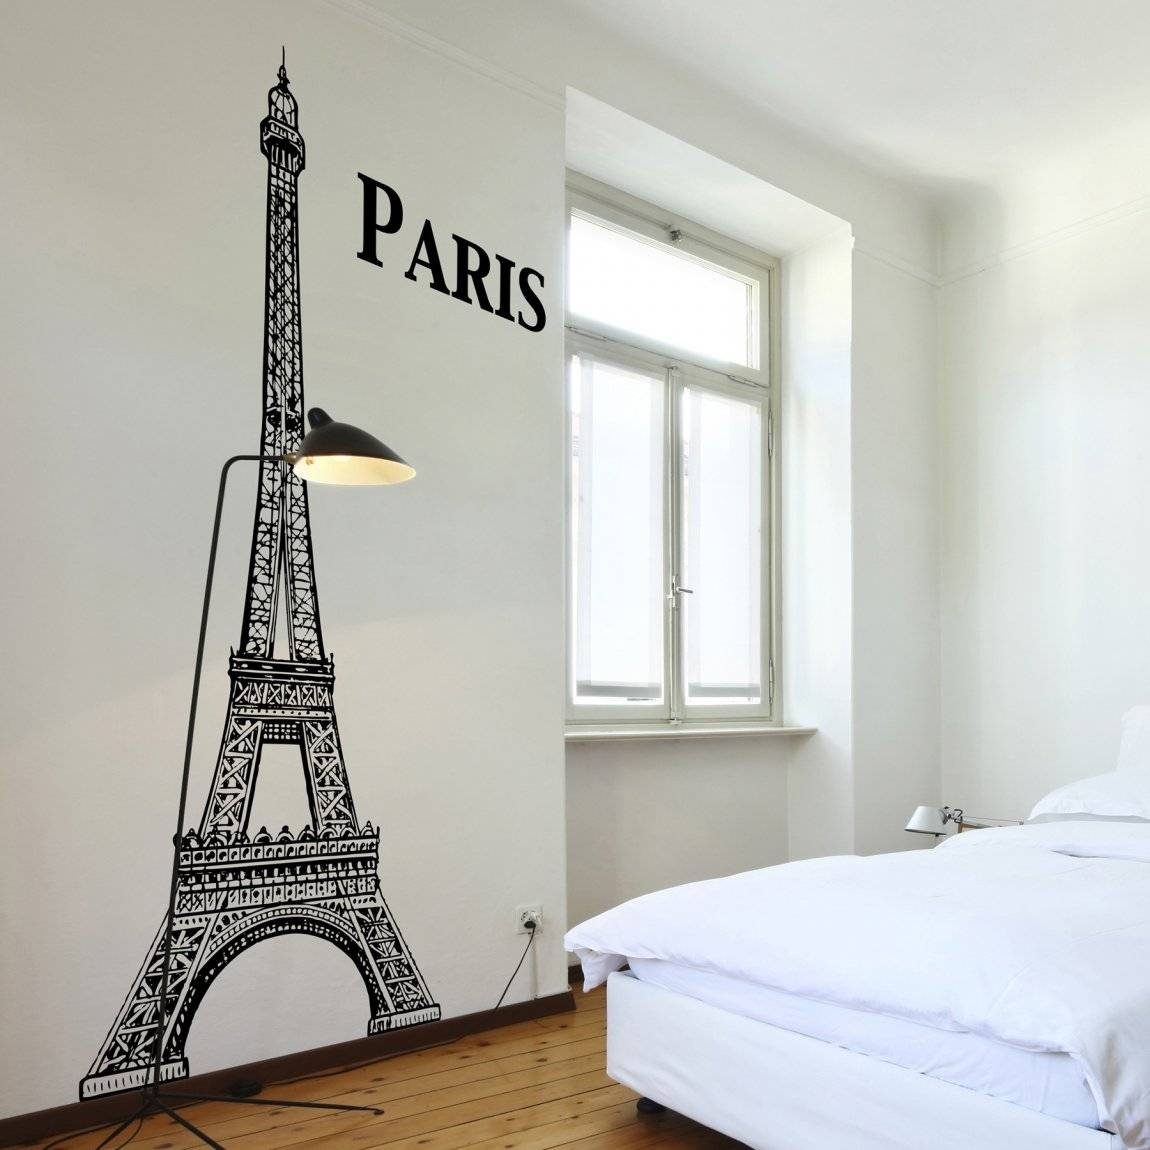 Paris Themed Wall Decals Images – Home Wall Decoration Ideas Throughout Current Paris Themed Stickers (View 13 of 15)